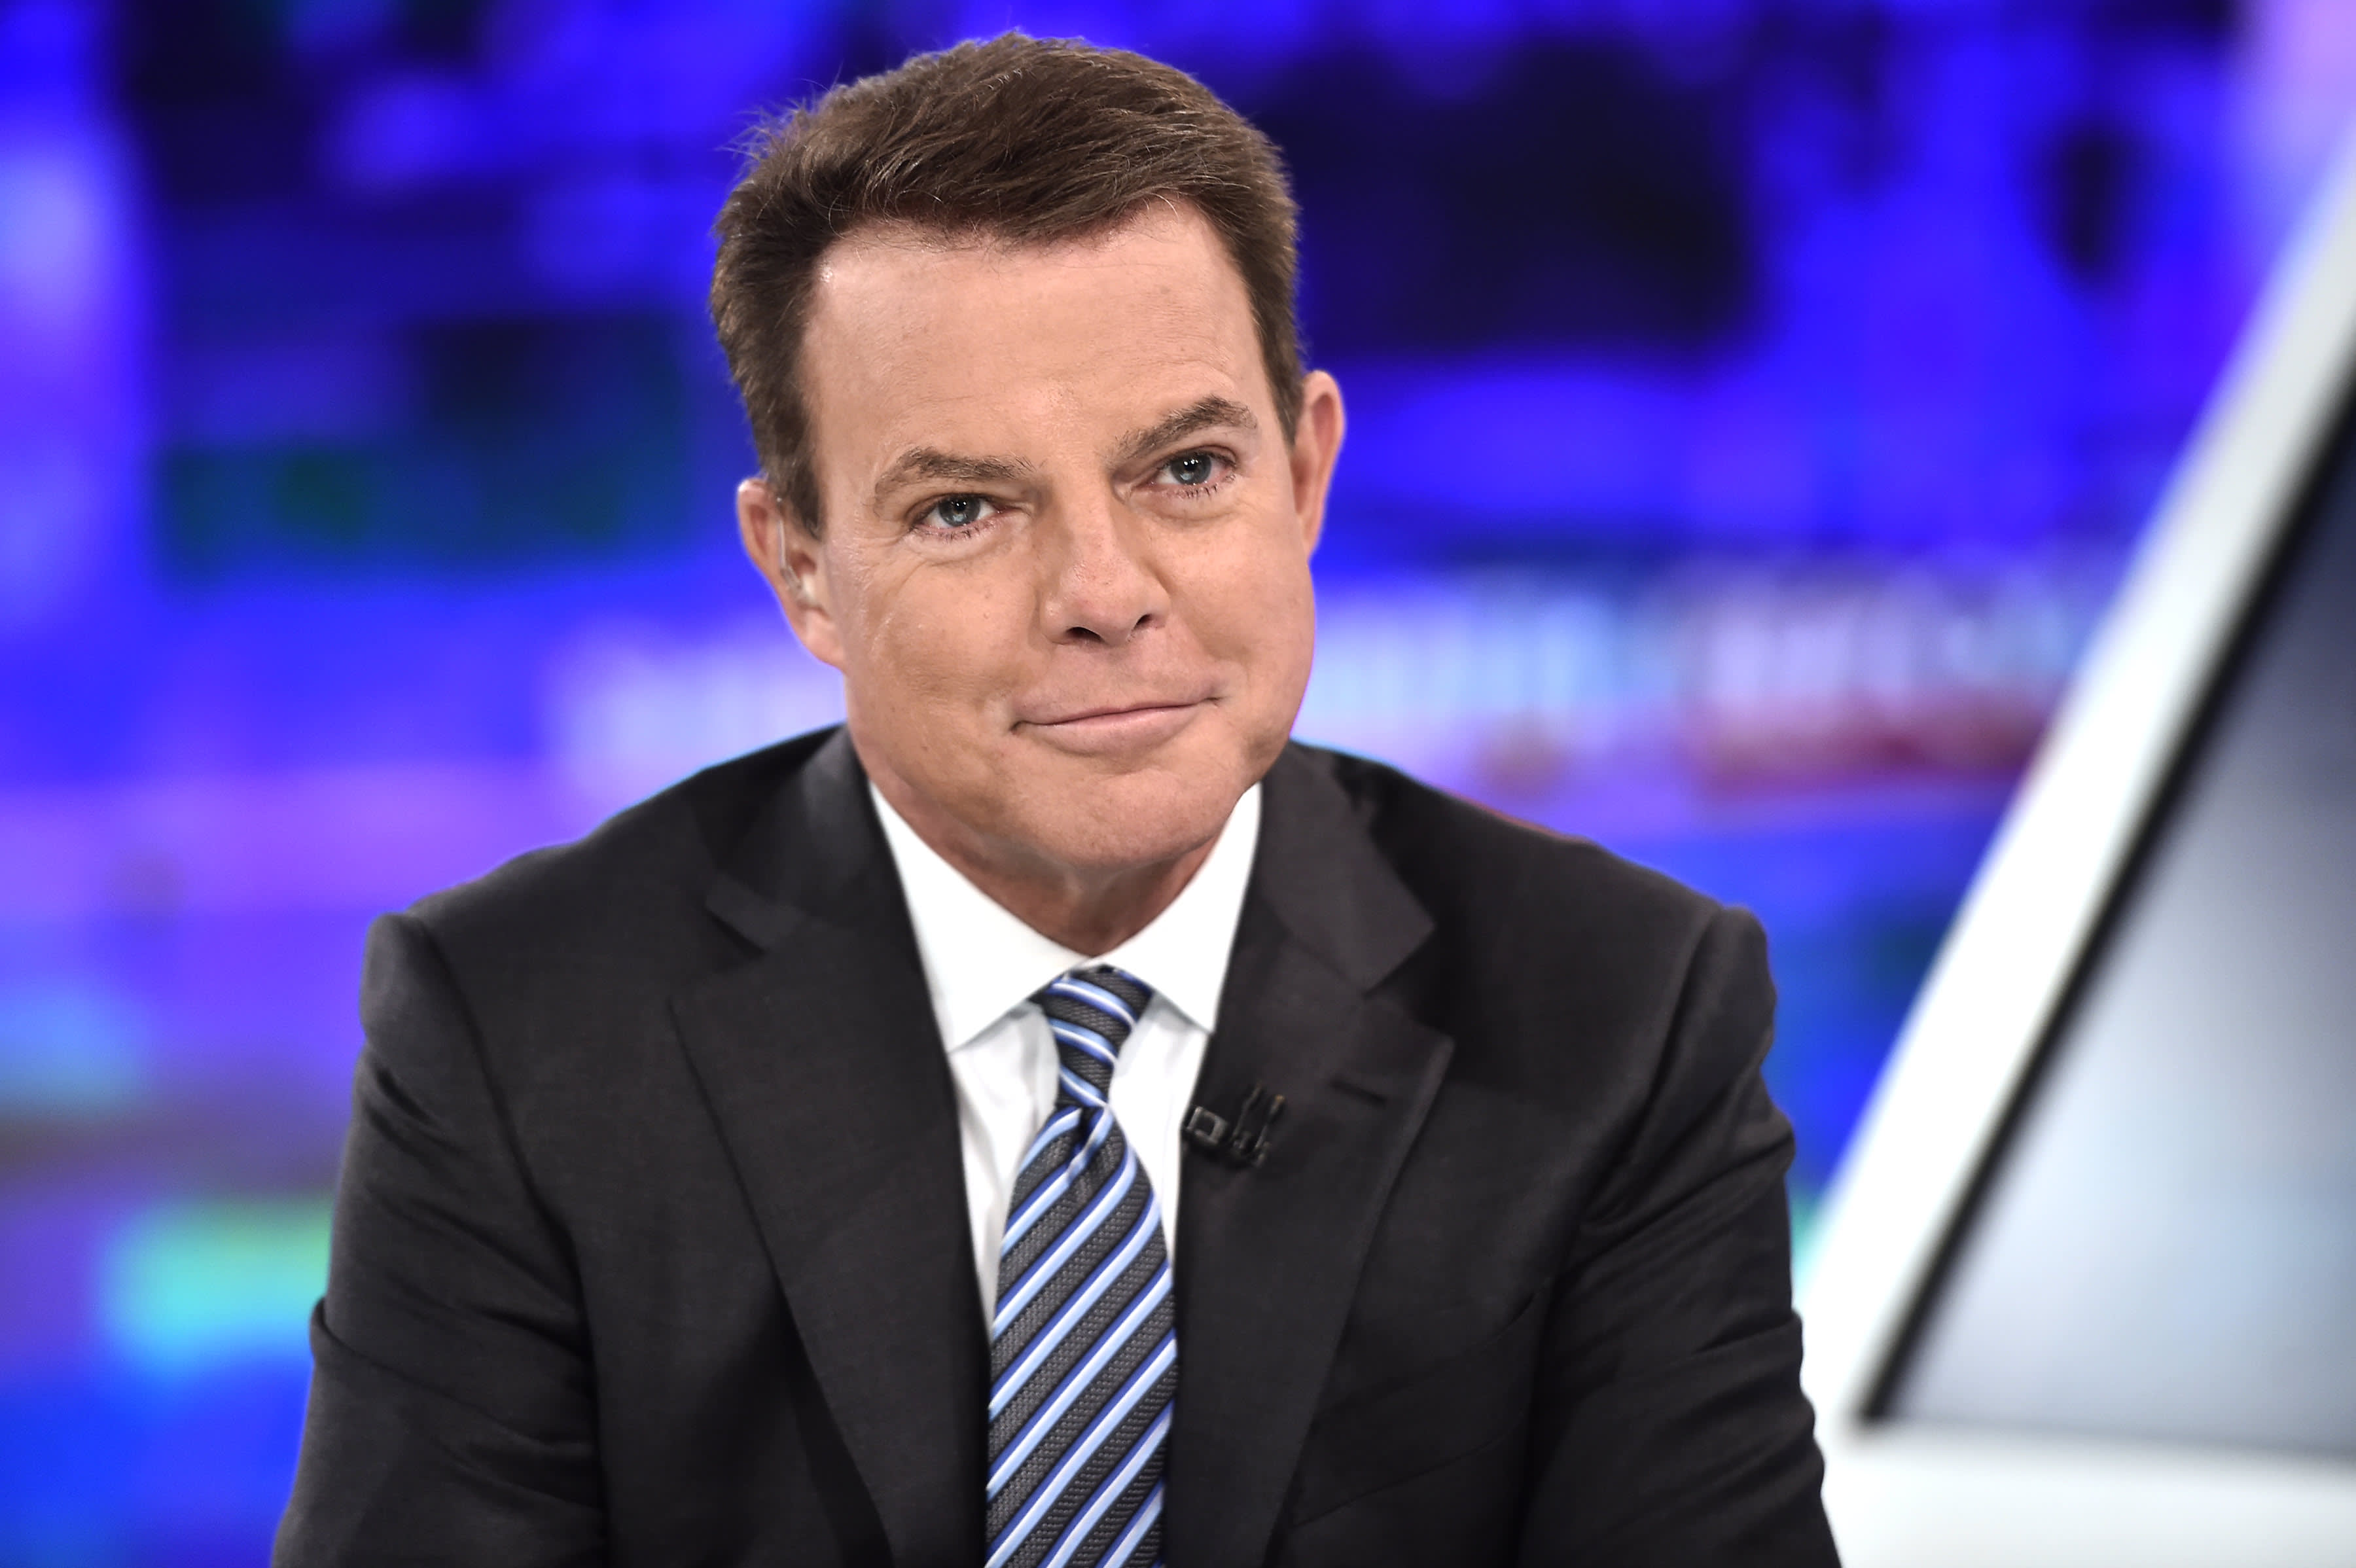 Fox News anchor Shepard Smith leaves network after Trump tweet